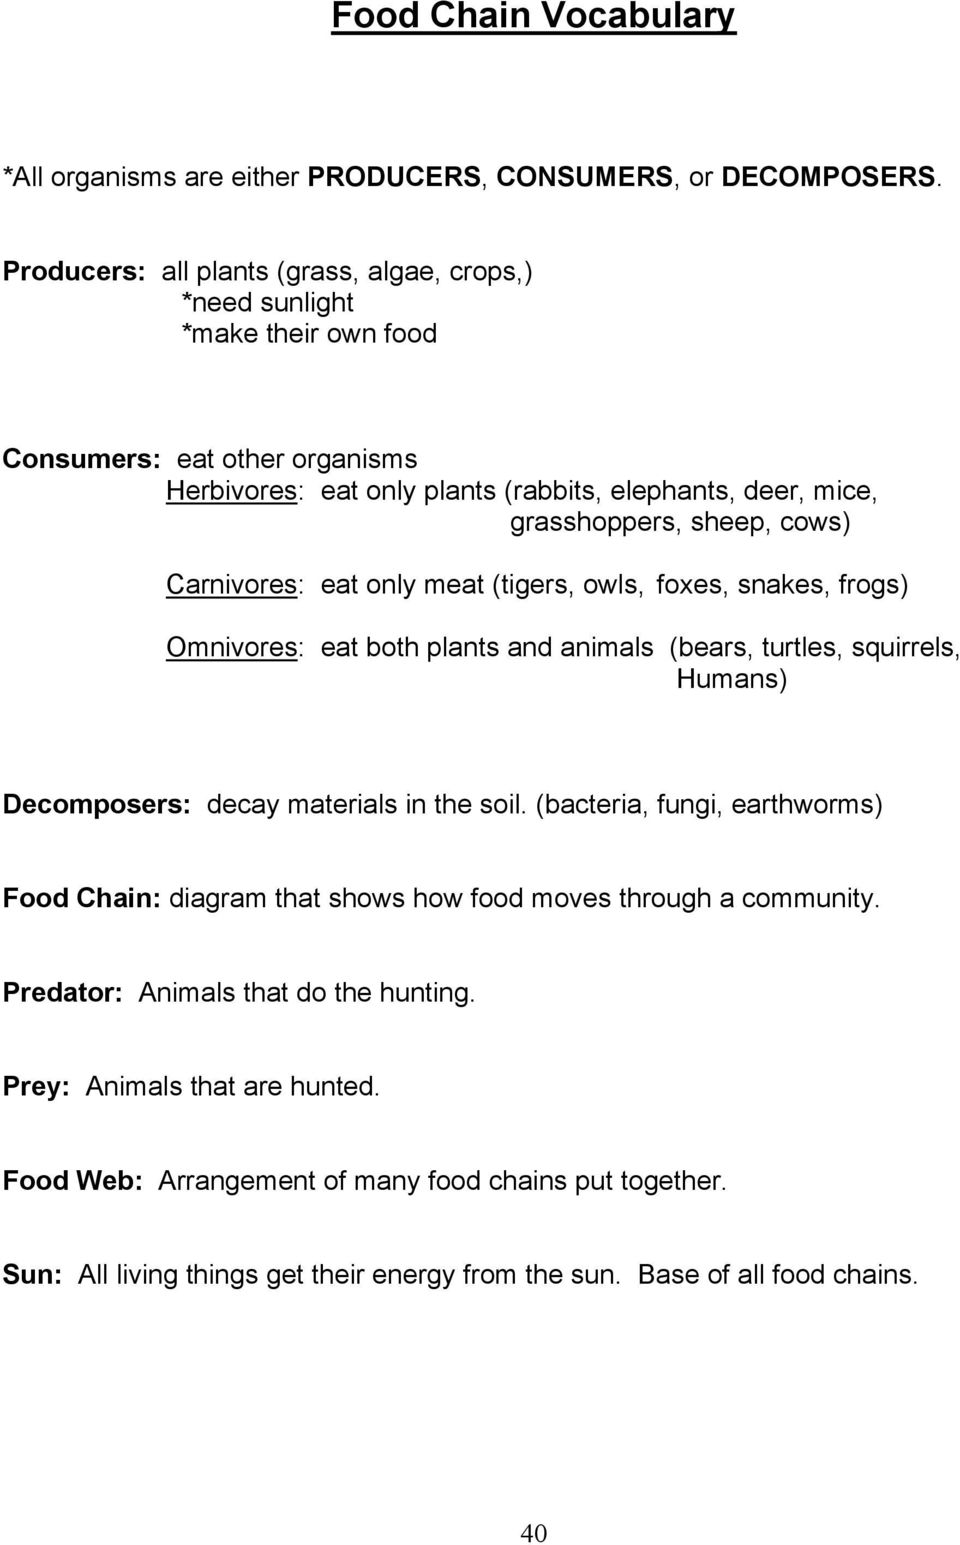 sheep, cows) Carnivores: eat only meat (tigers, owls, foxes, snakes, frogs) Omnivores: eat both plants and animals (bears, turtles, squirrels, Humans) Decomposers: decay materials in the soil.